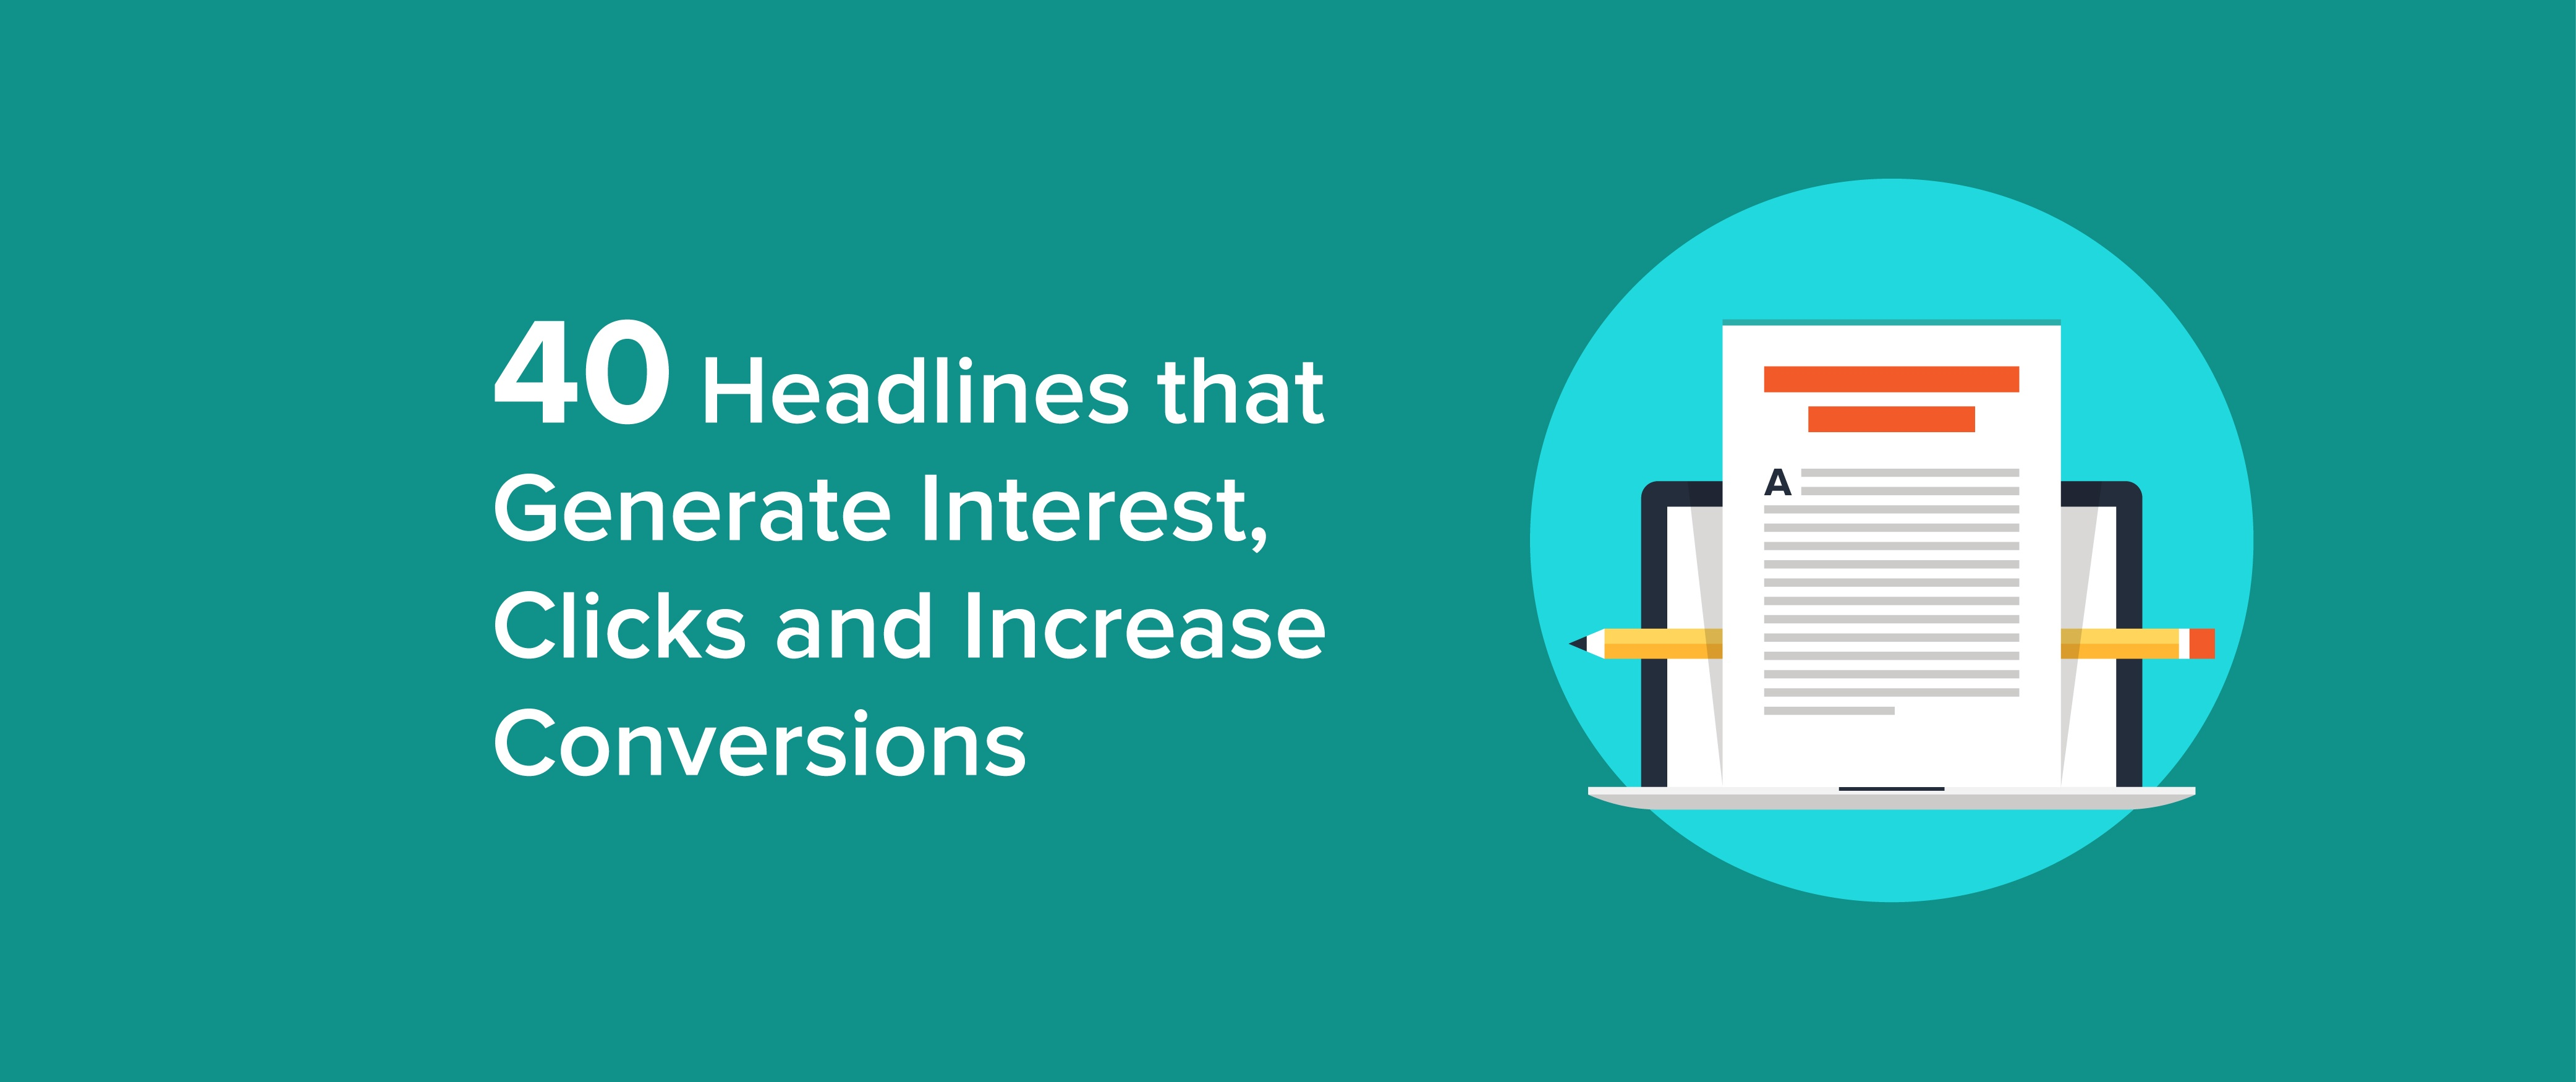 Types of headlines to increase conversions